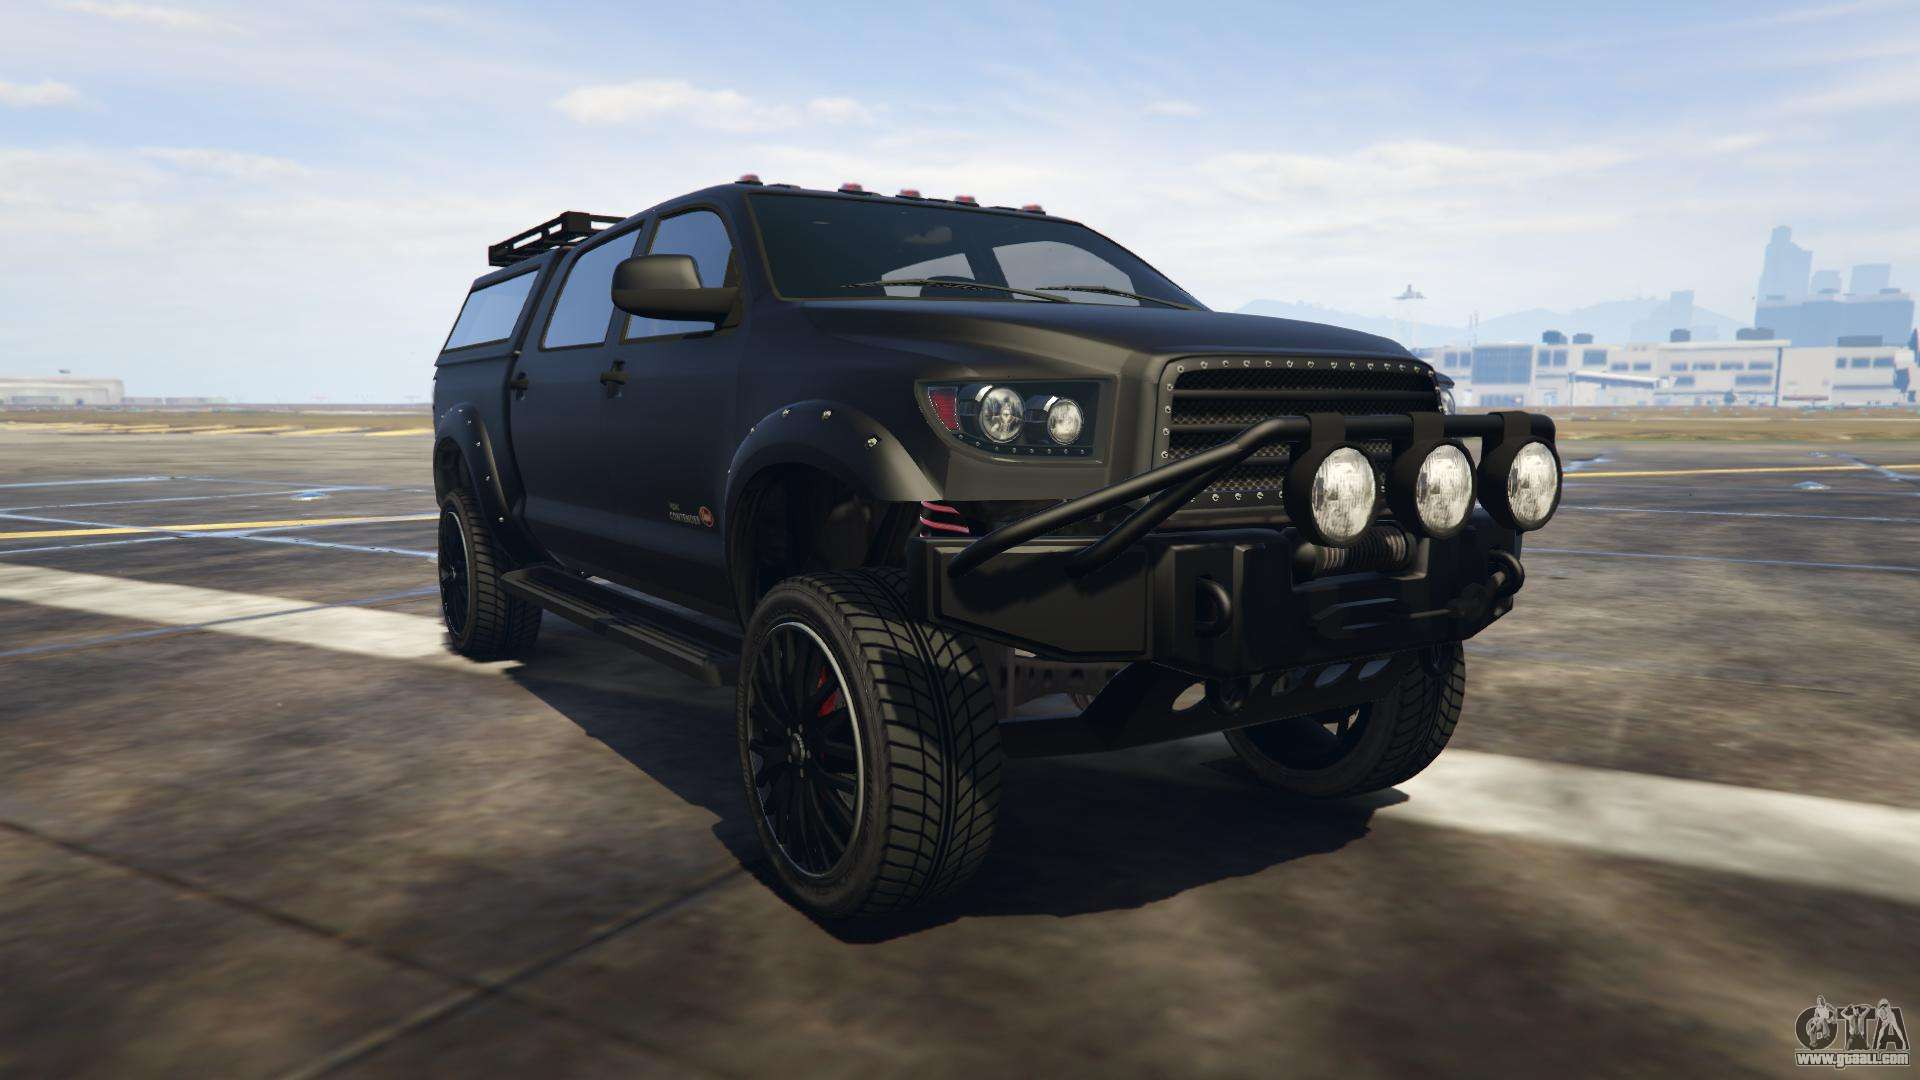 GTA 5 vehicles: all cars and motorcycles, planes and helicopters